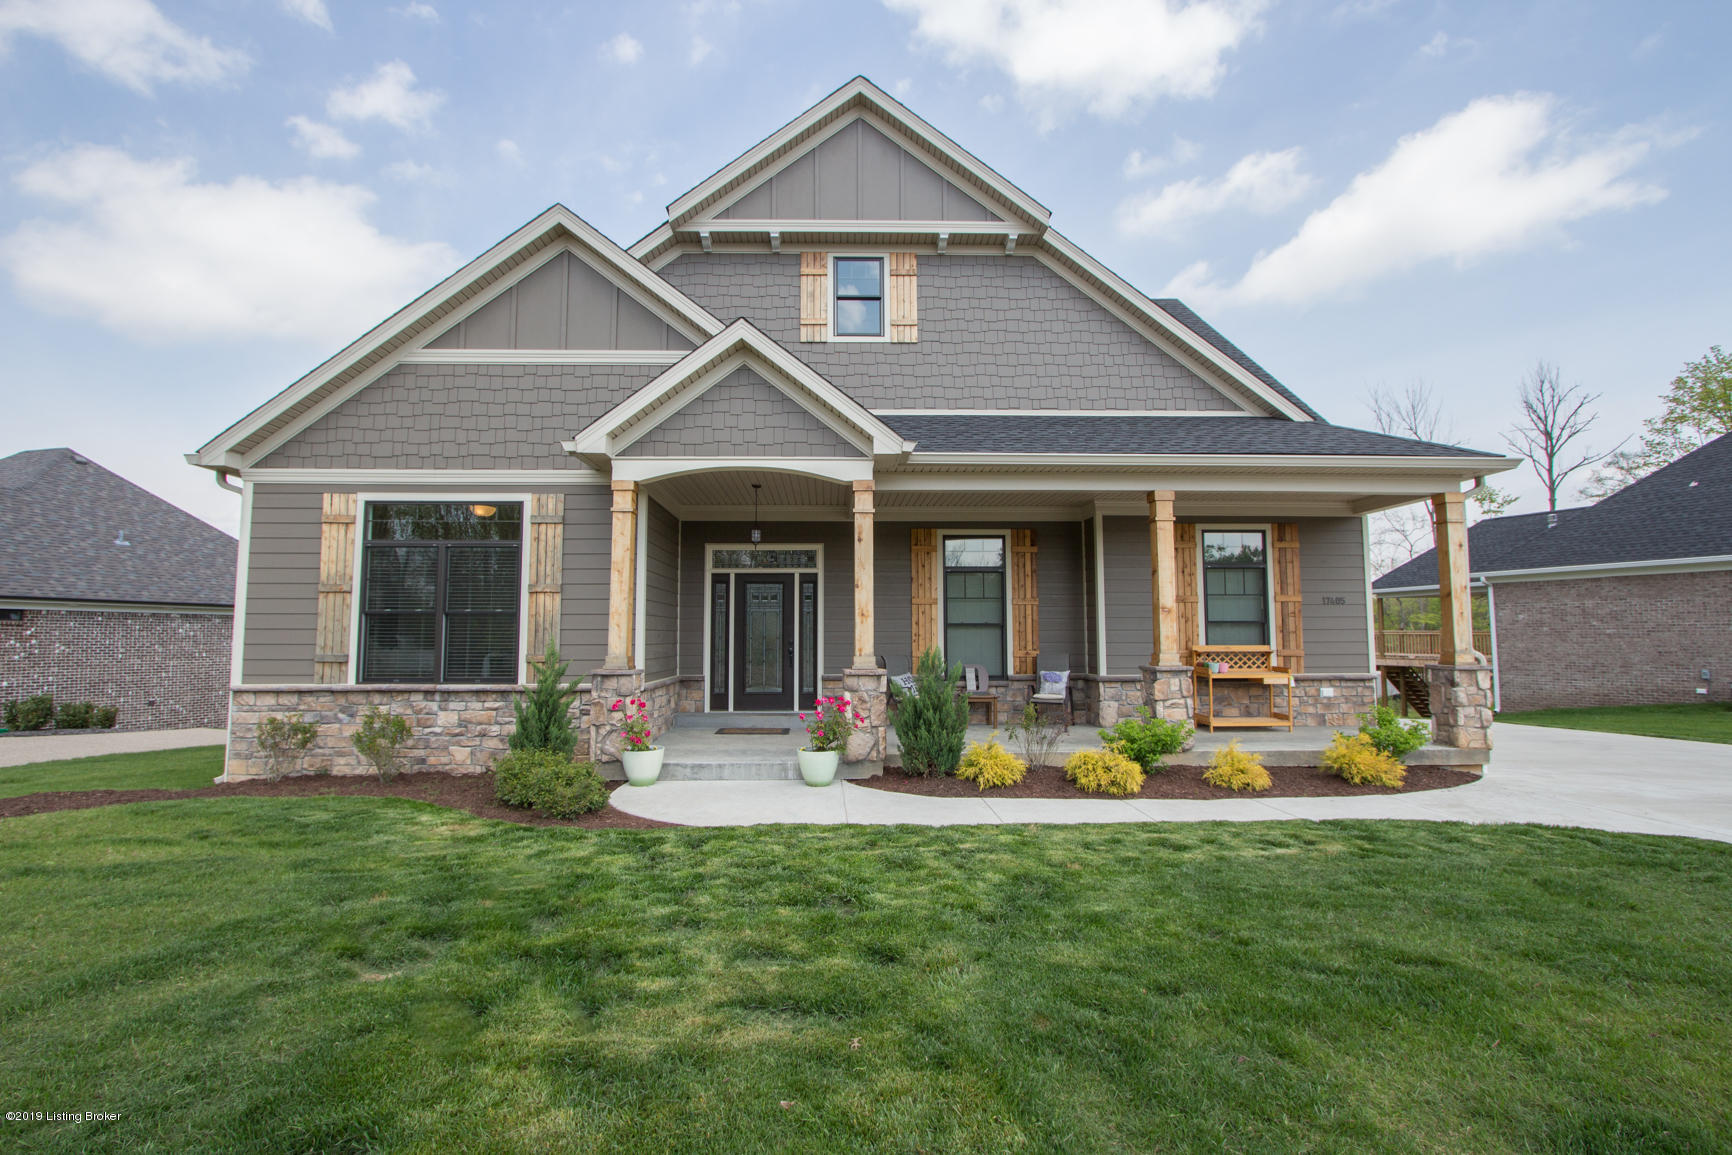 17405 Shakes Creek Dr, Fisherville, Kentucky 40023, 5 Bedrooms Bedrooms, 9 Rooms Rooms,3 BathroomsBathrooms,Residential,For Sale,Shakes Creek,1530450